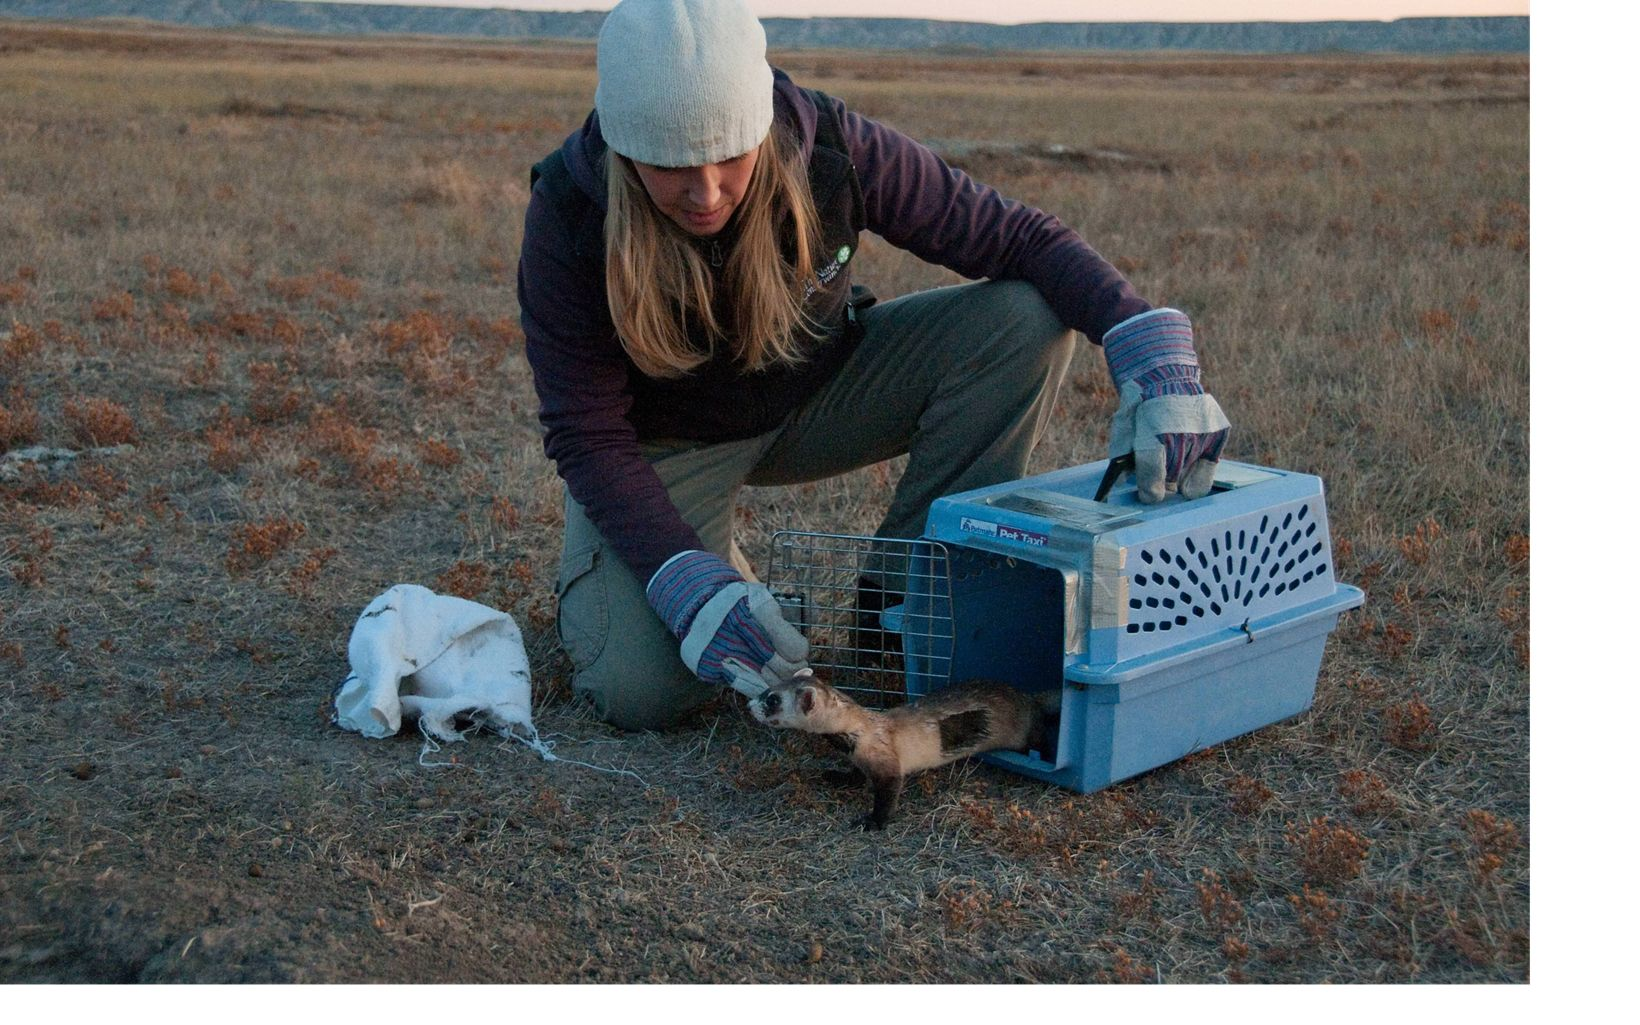 Conservancy staff Karla Suckling releases endangered black-footed ferret back to where it was captured after its exam and inoculations by a wildlfe biologist.